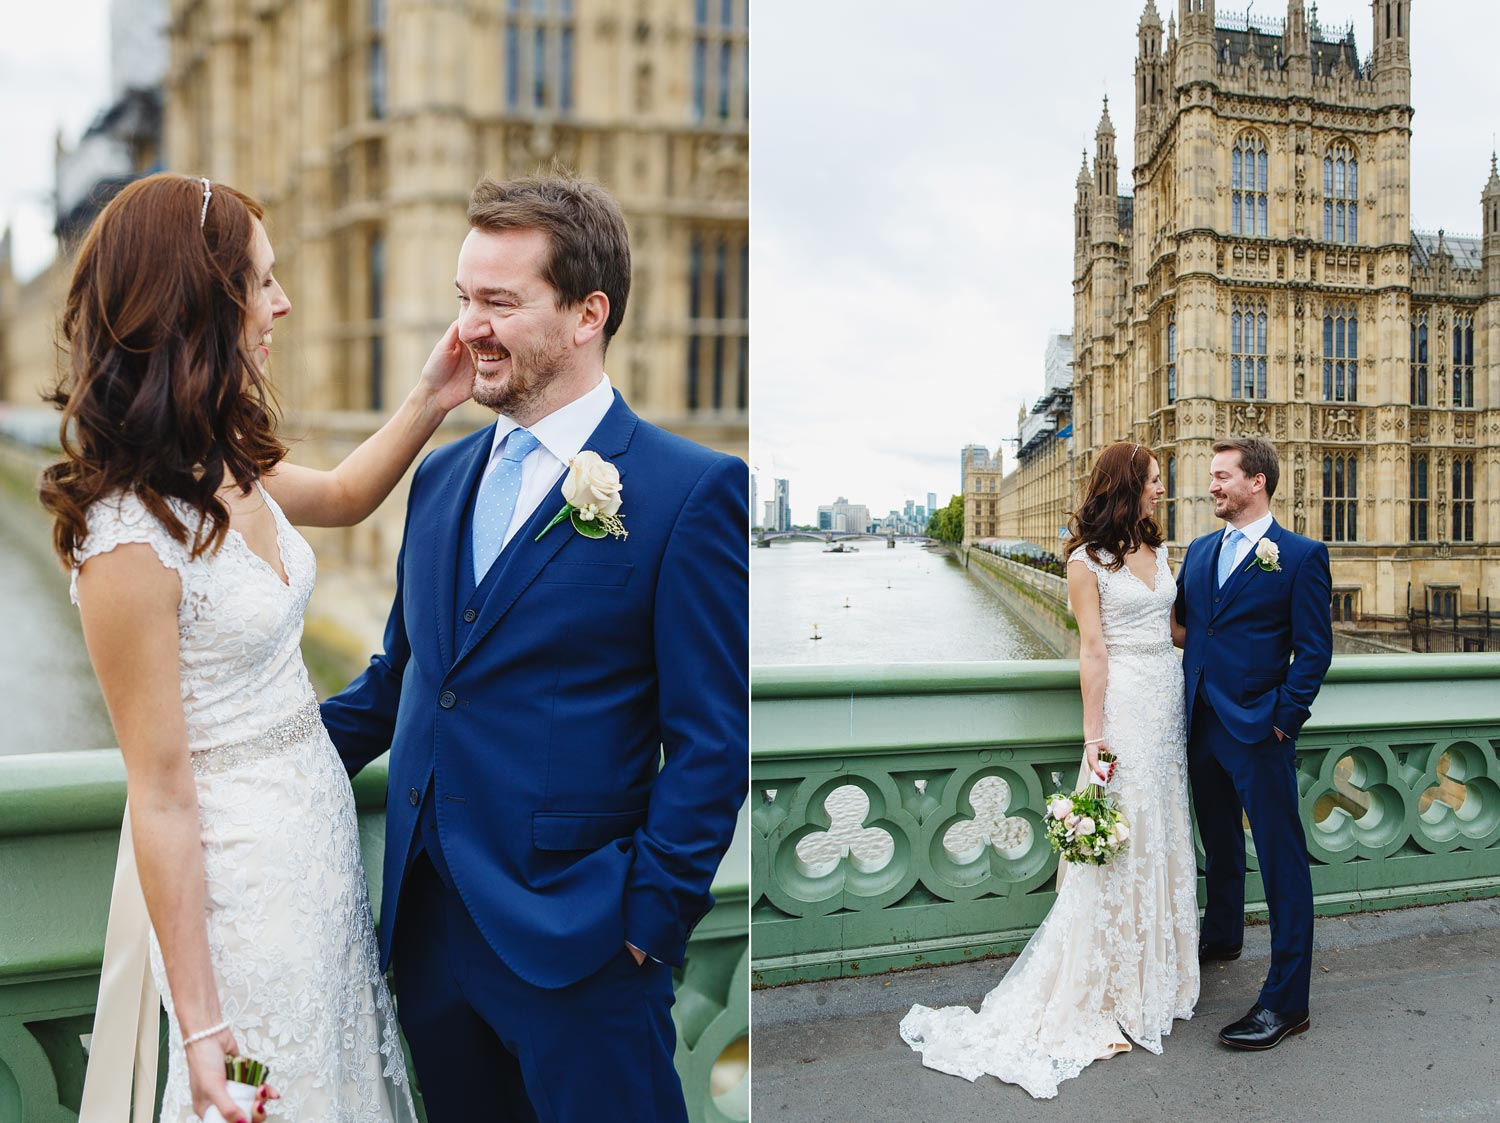 A couple get married at the House of Commons - London wedding photographer - Westminster Bridge